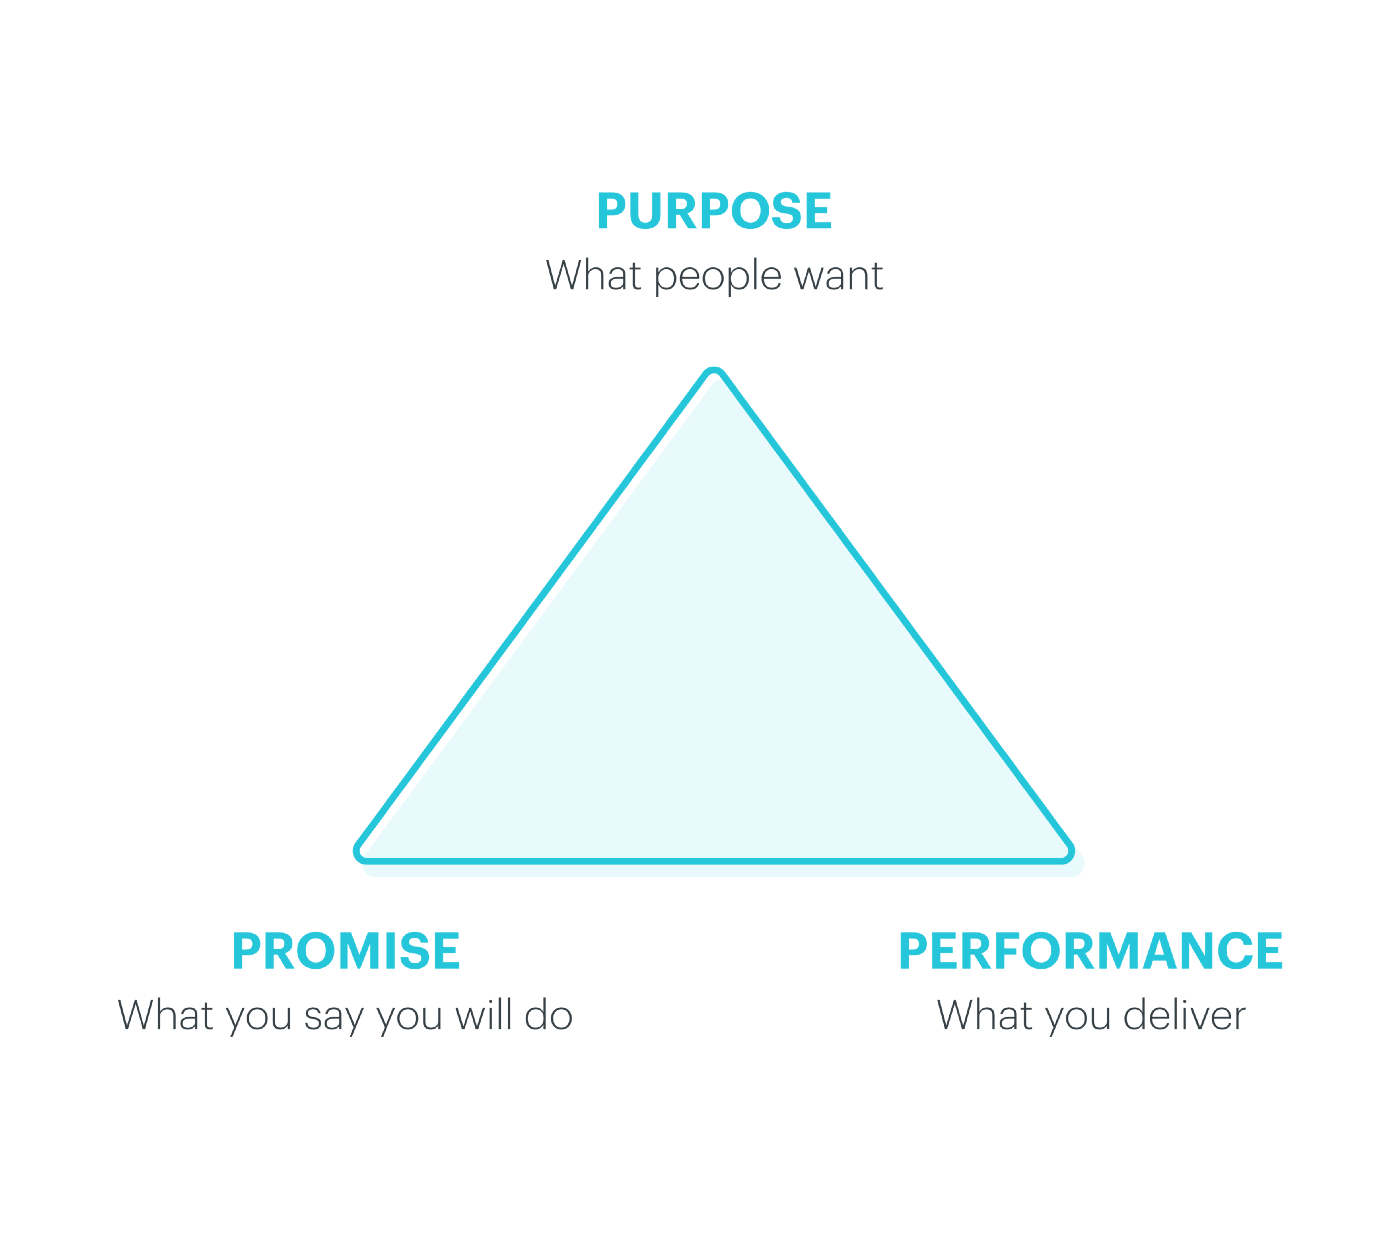 Triangle diagram with the relationship between: Purpose (What people want), Promise (What you say you will do) and Performance (What you deliver).